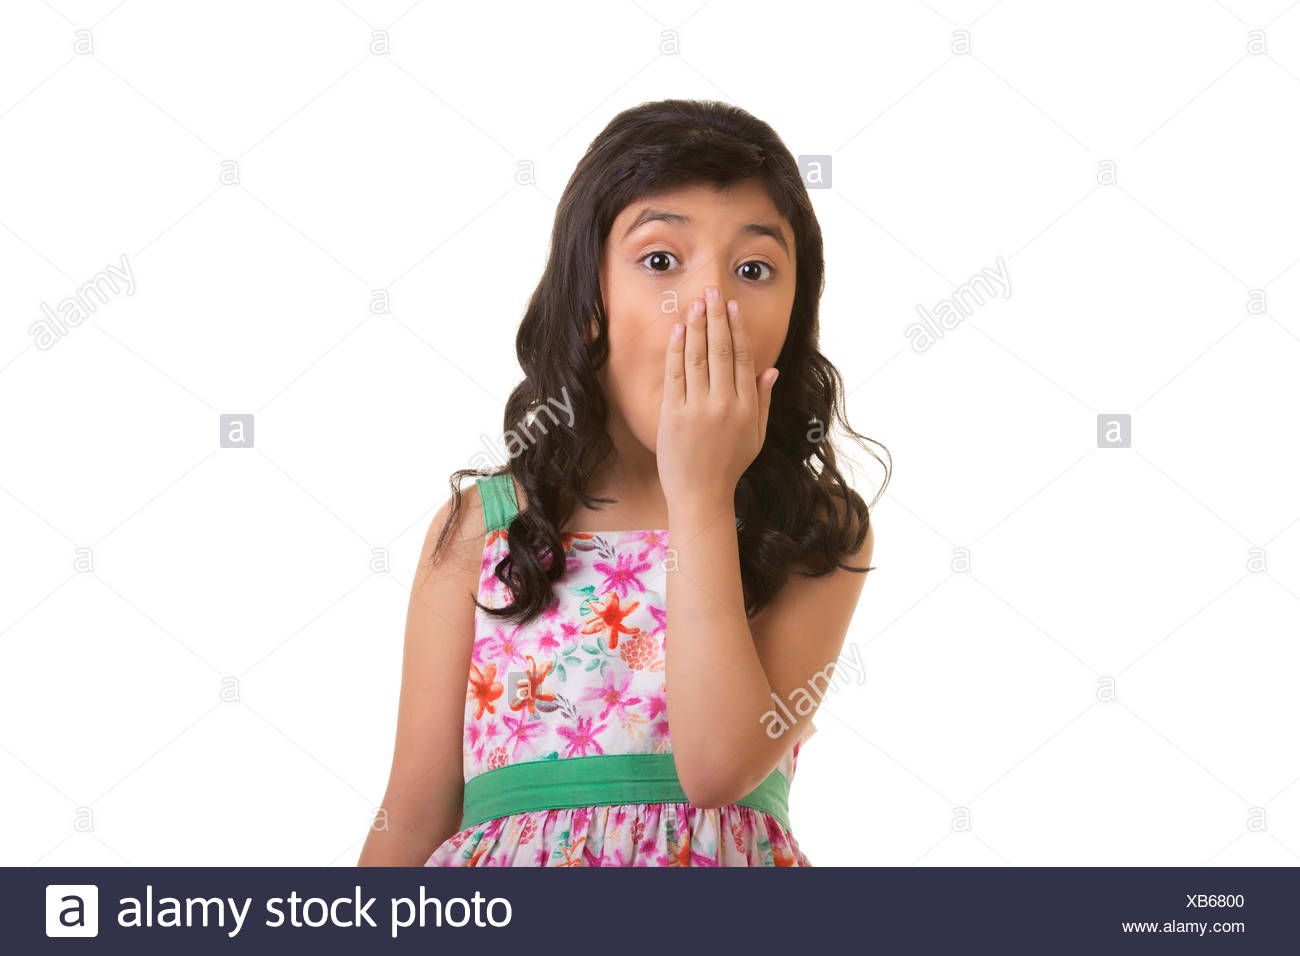 Girl showing shock - Stock Image